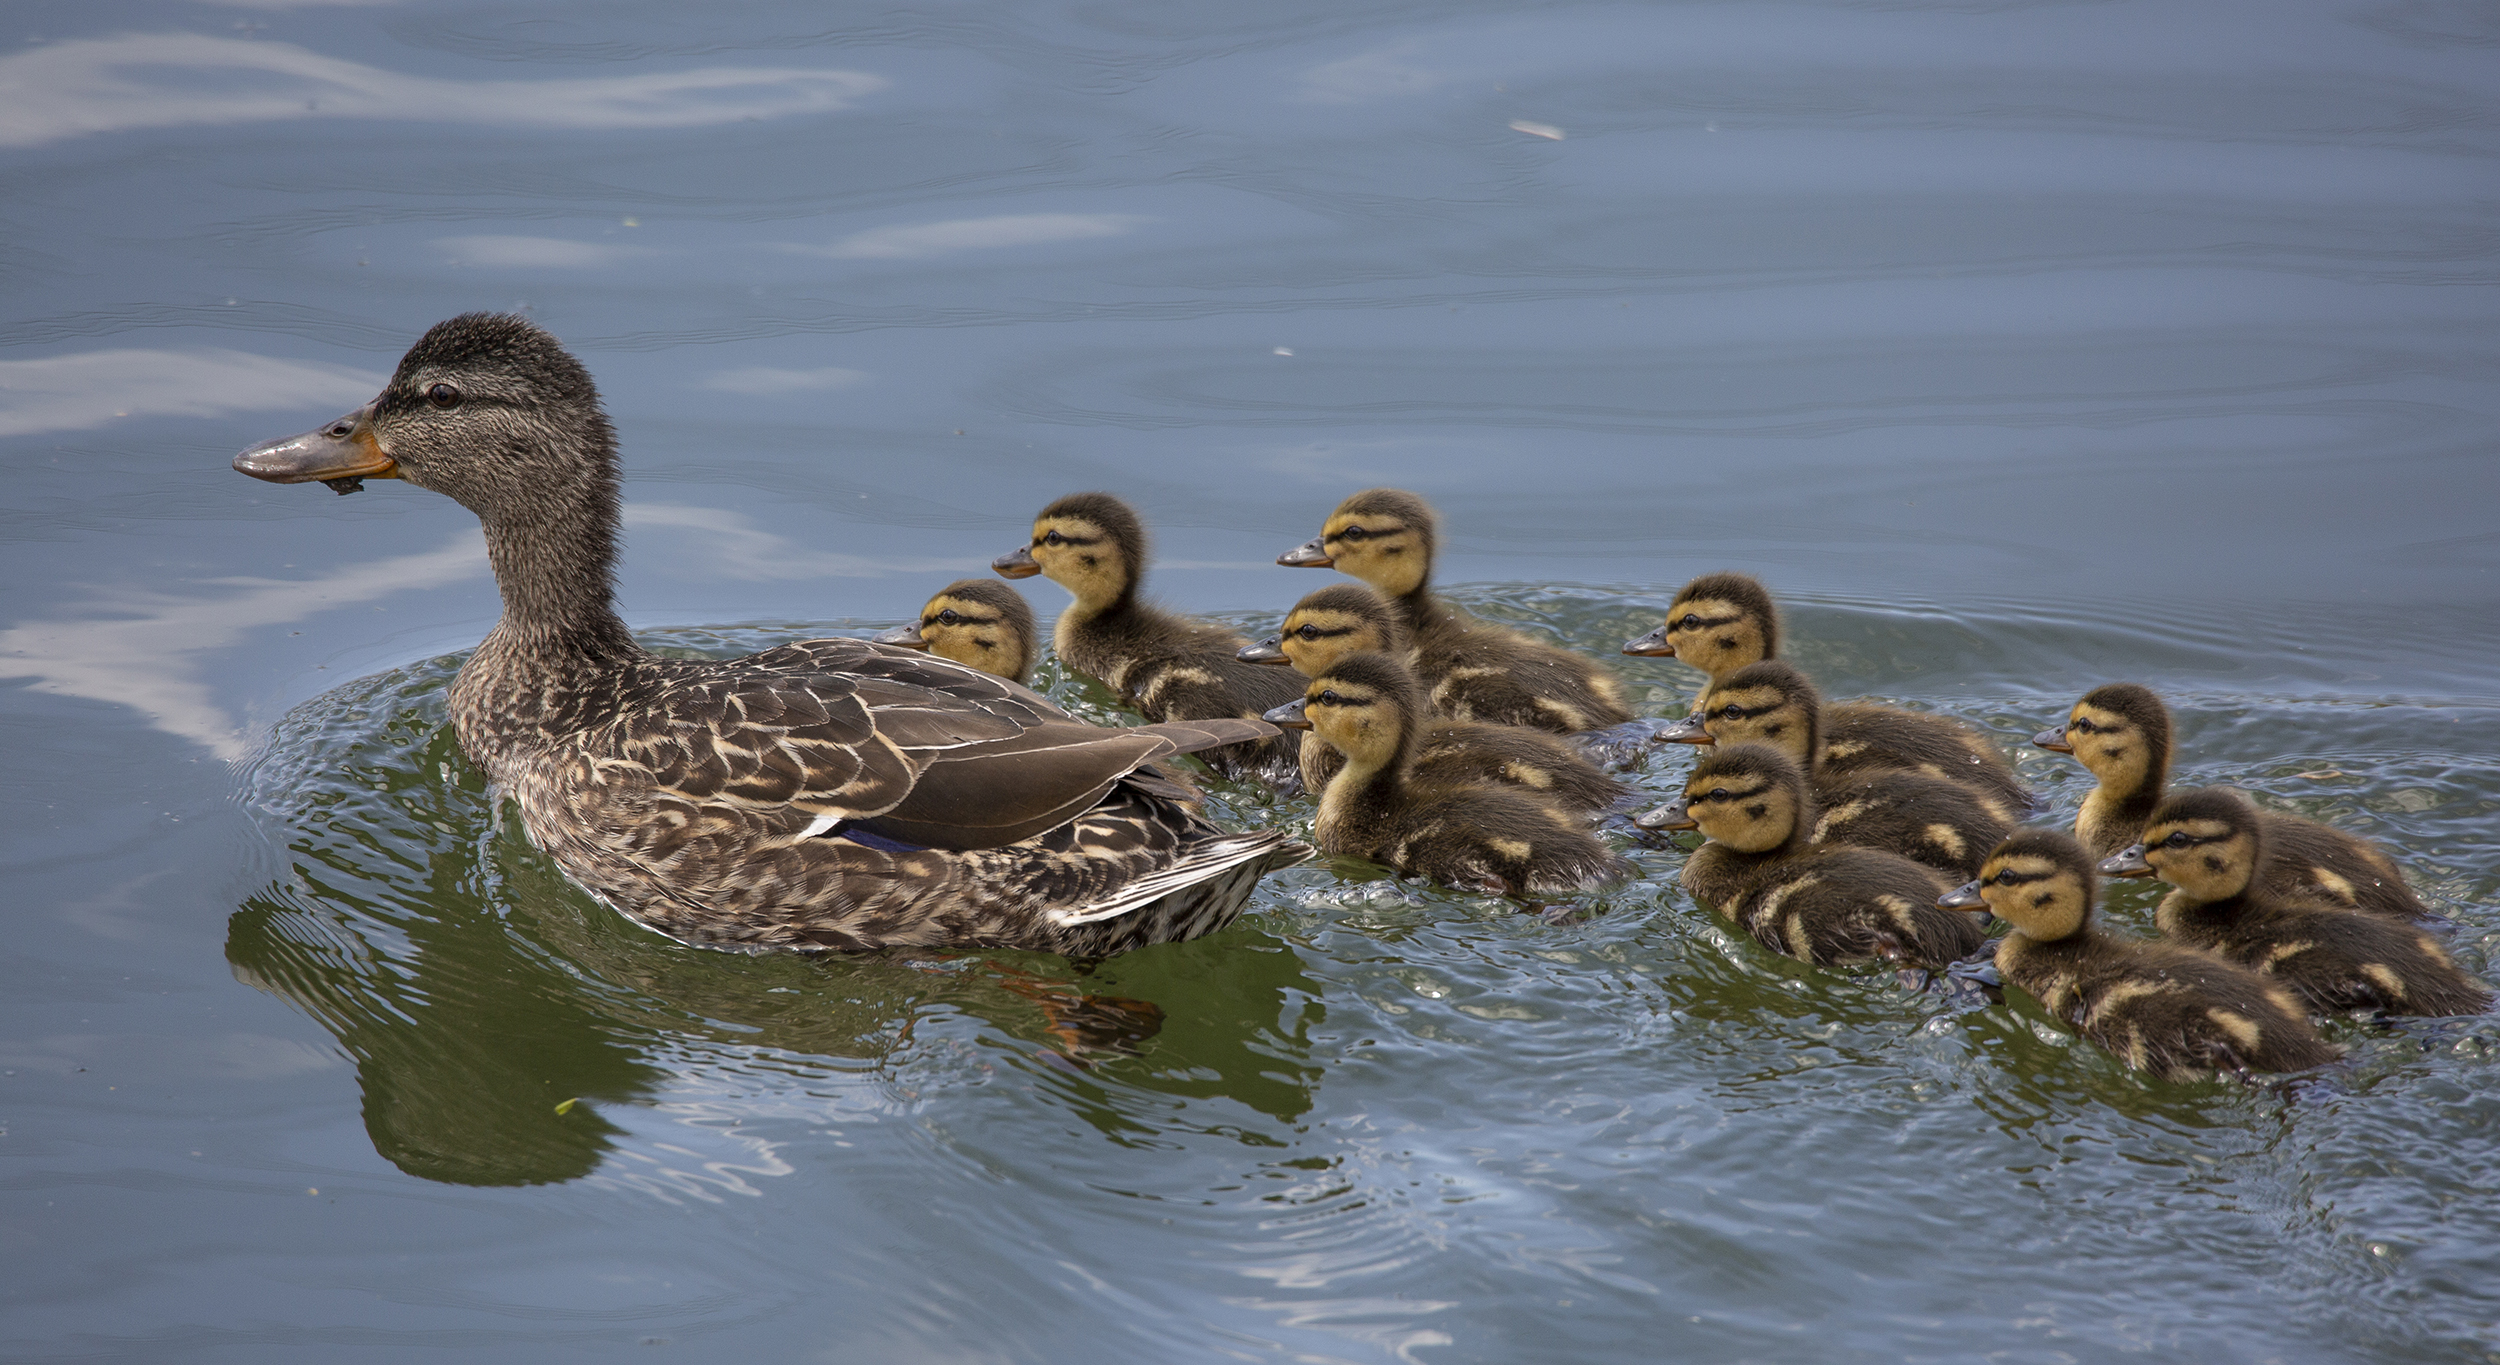 A female mallard surrounded by ducklings